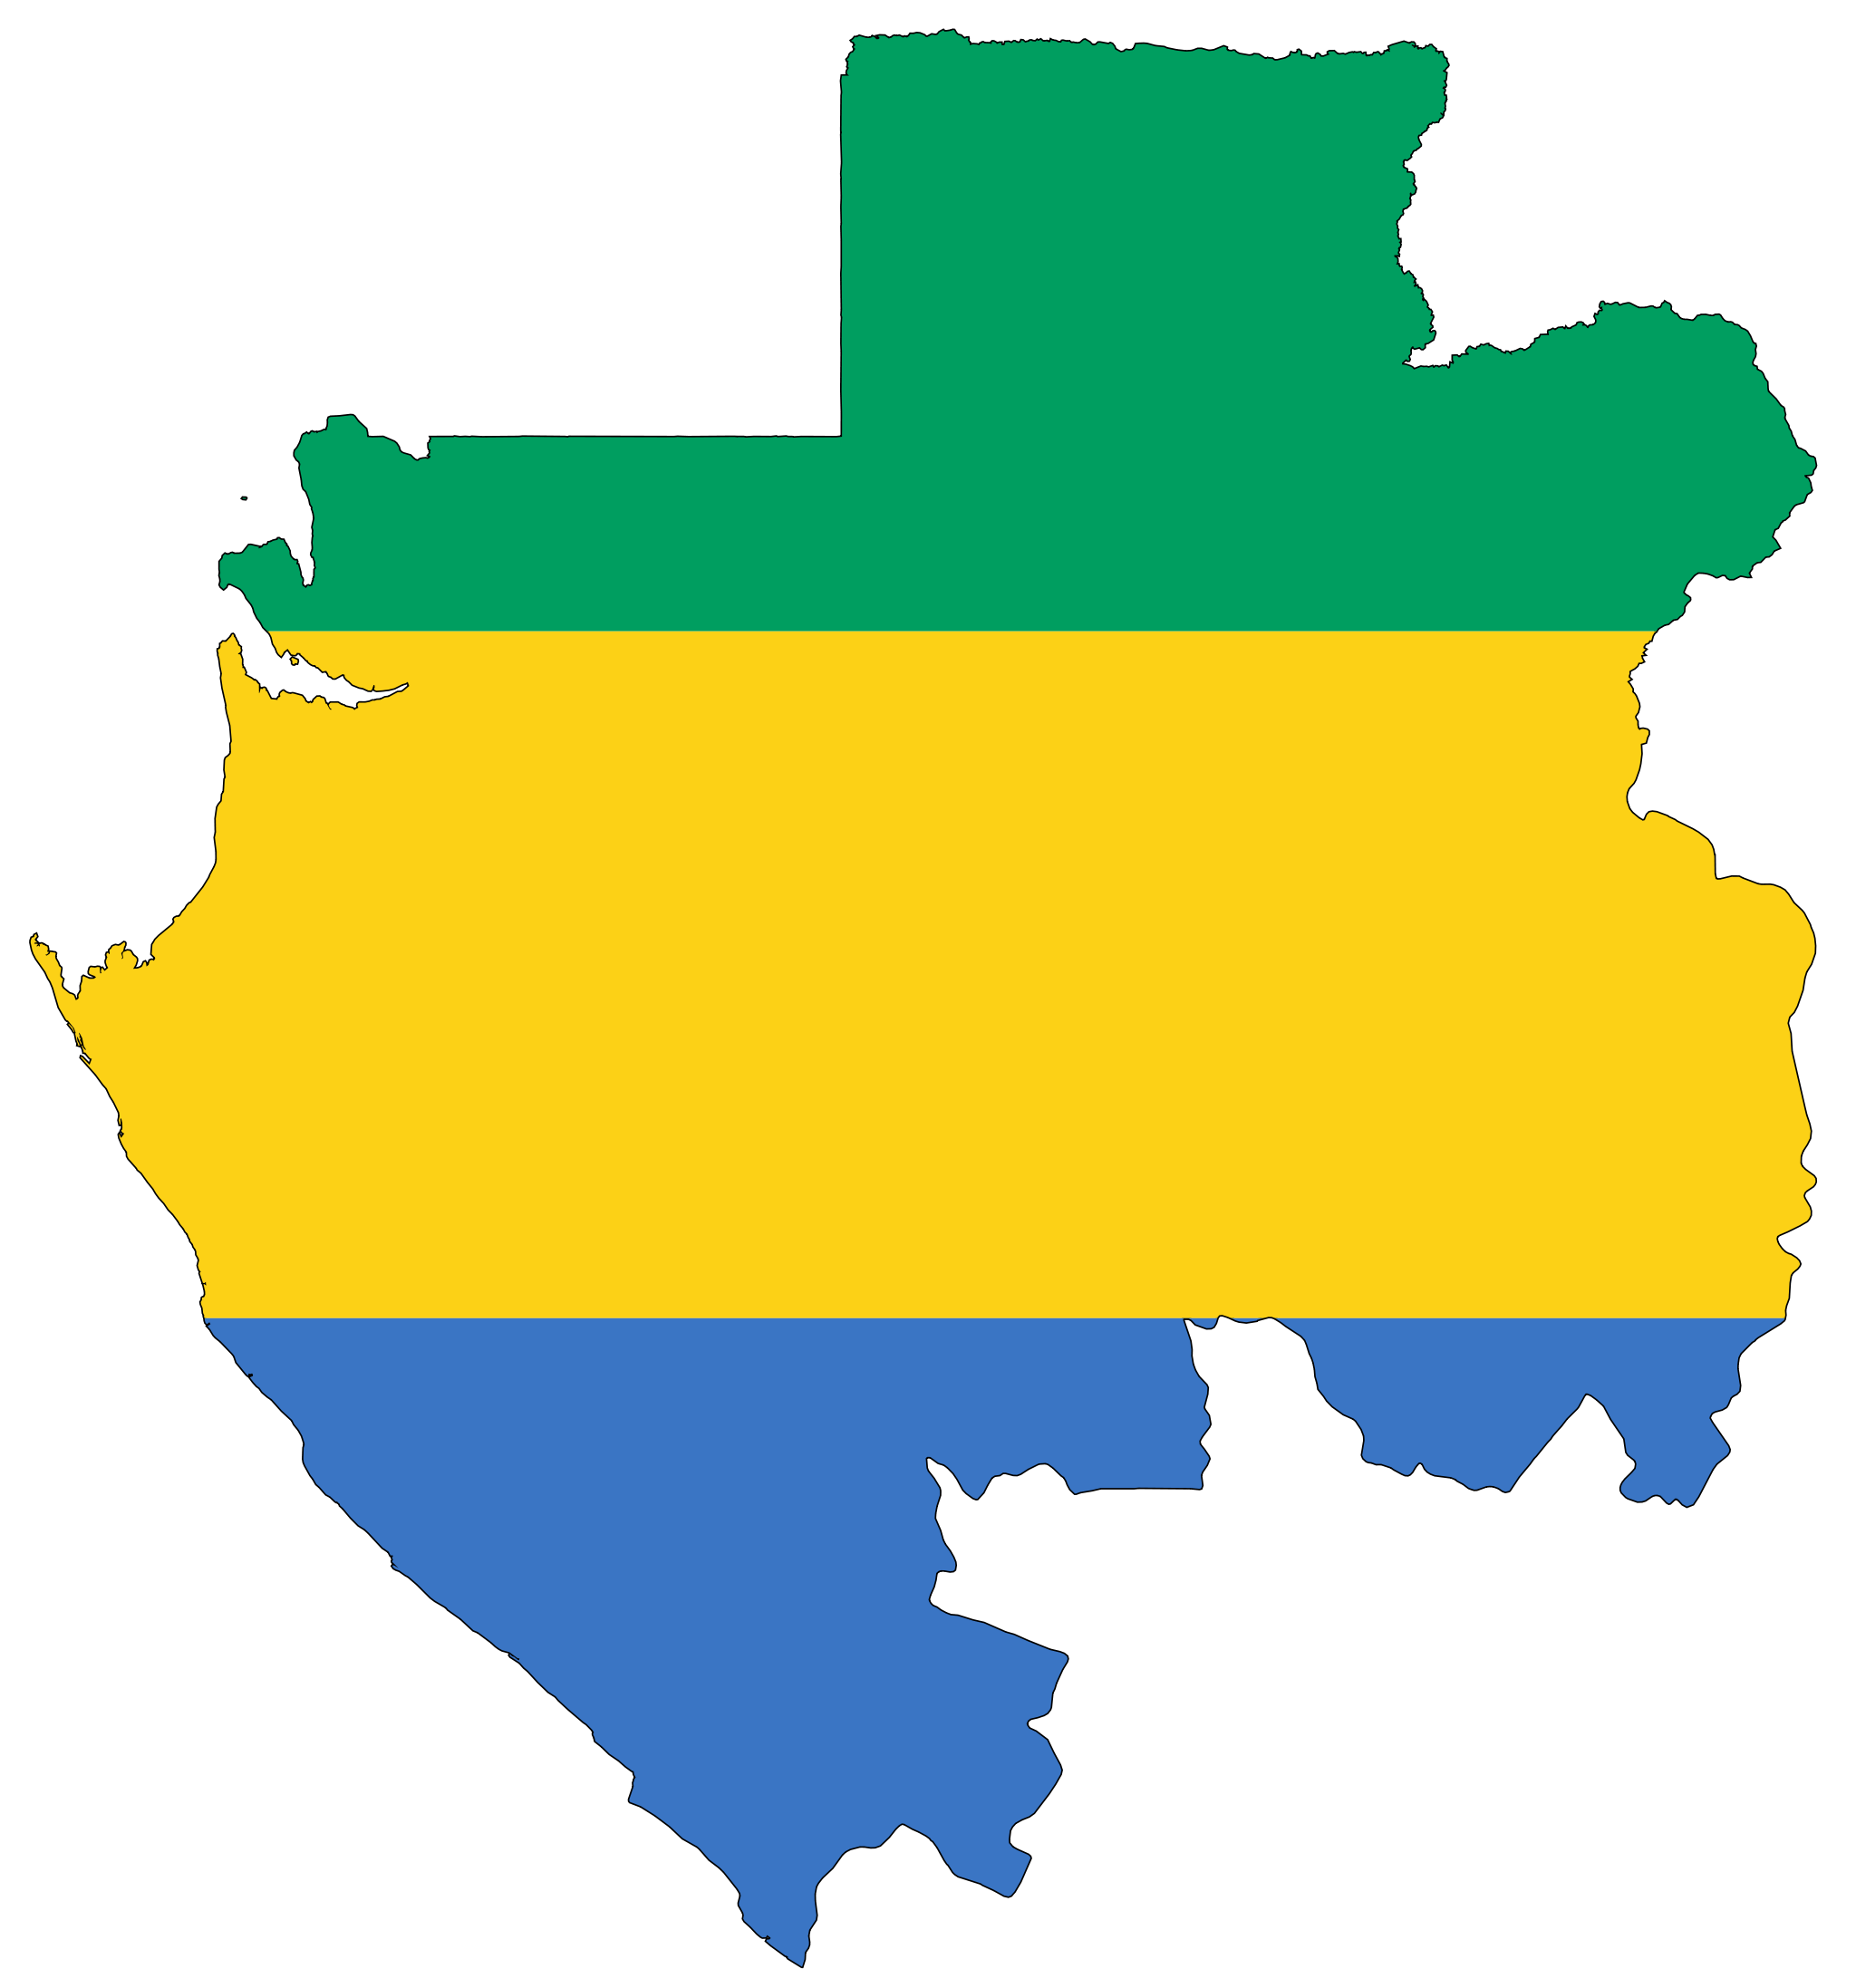 Gabon Flag Map Mapsofnet - Gabon map